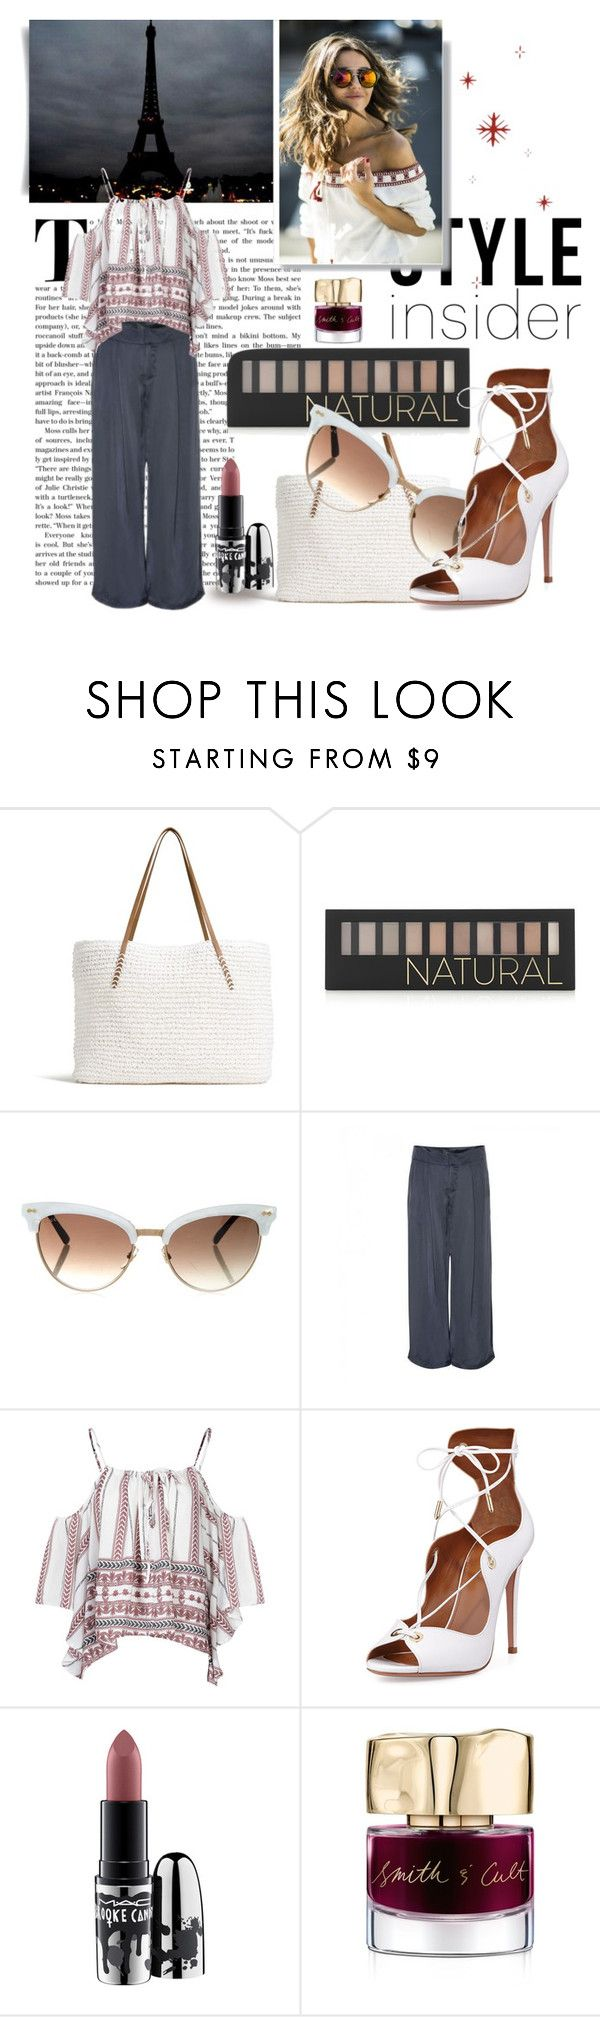 """Off White"" by karimaputri on Polyvore featuring G.H. Bass & Co., Forever 21, Gucci, Gestuz, Glamorous, Aquazzura, MAC Cosmetics, Smith & Cult, contestentry and laceupsandals"